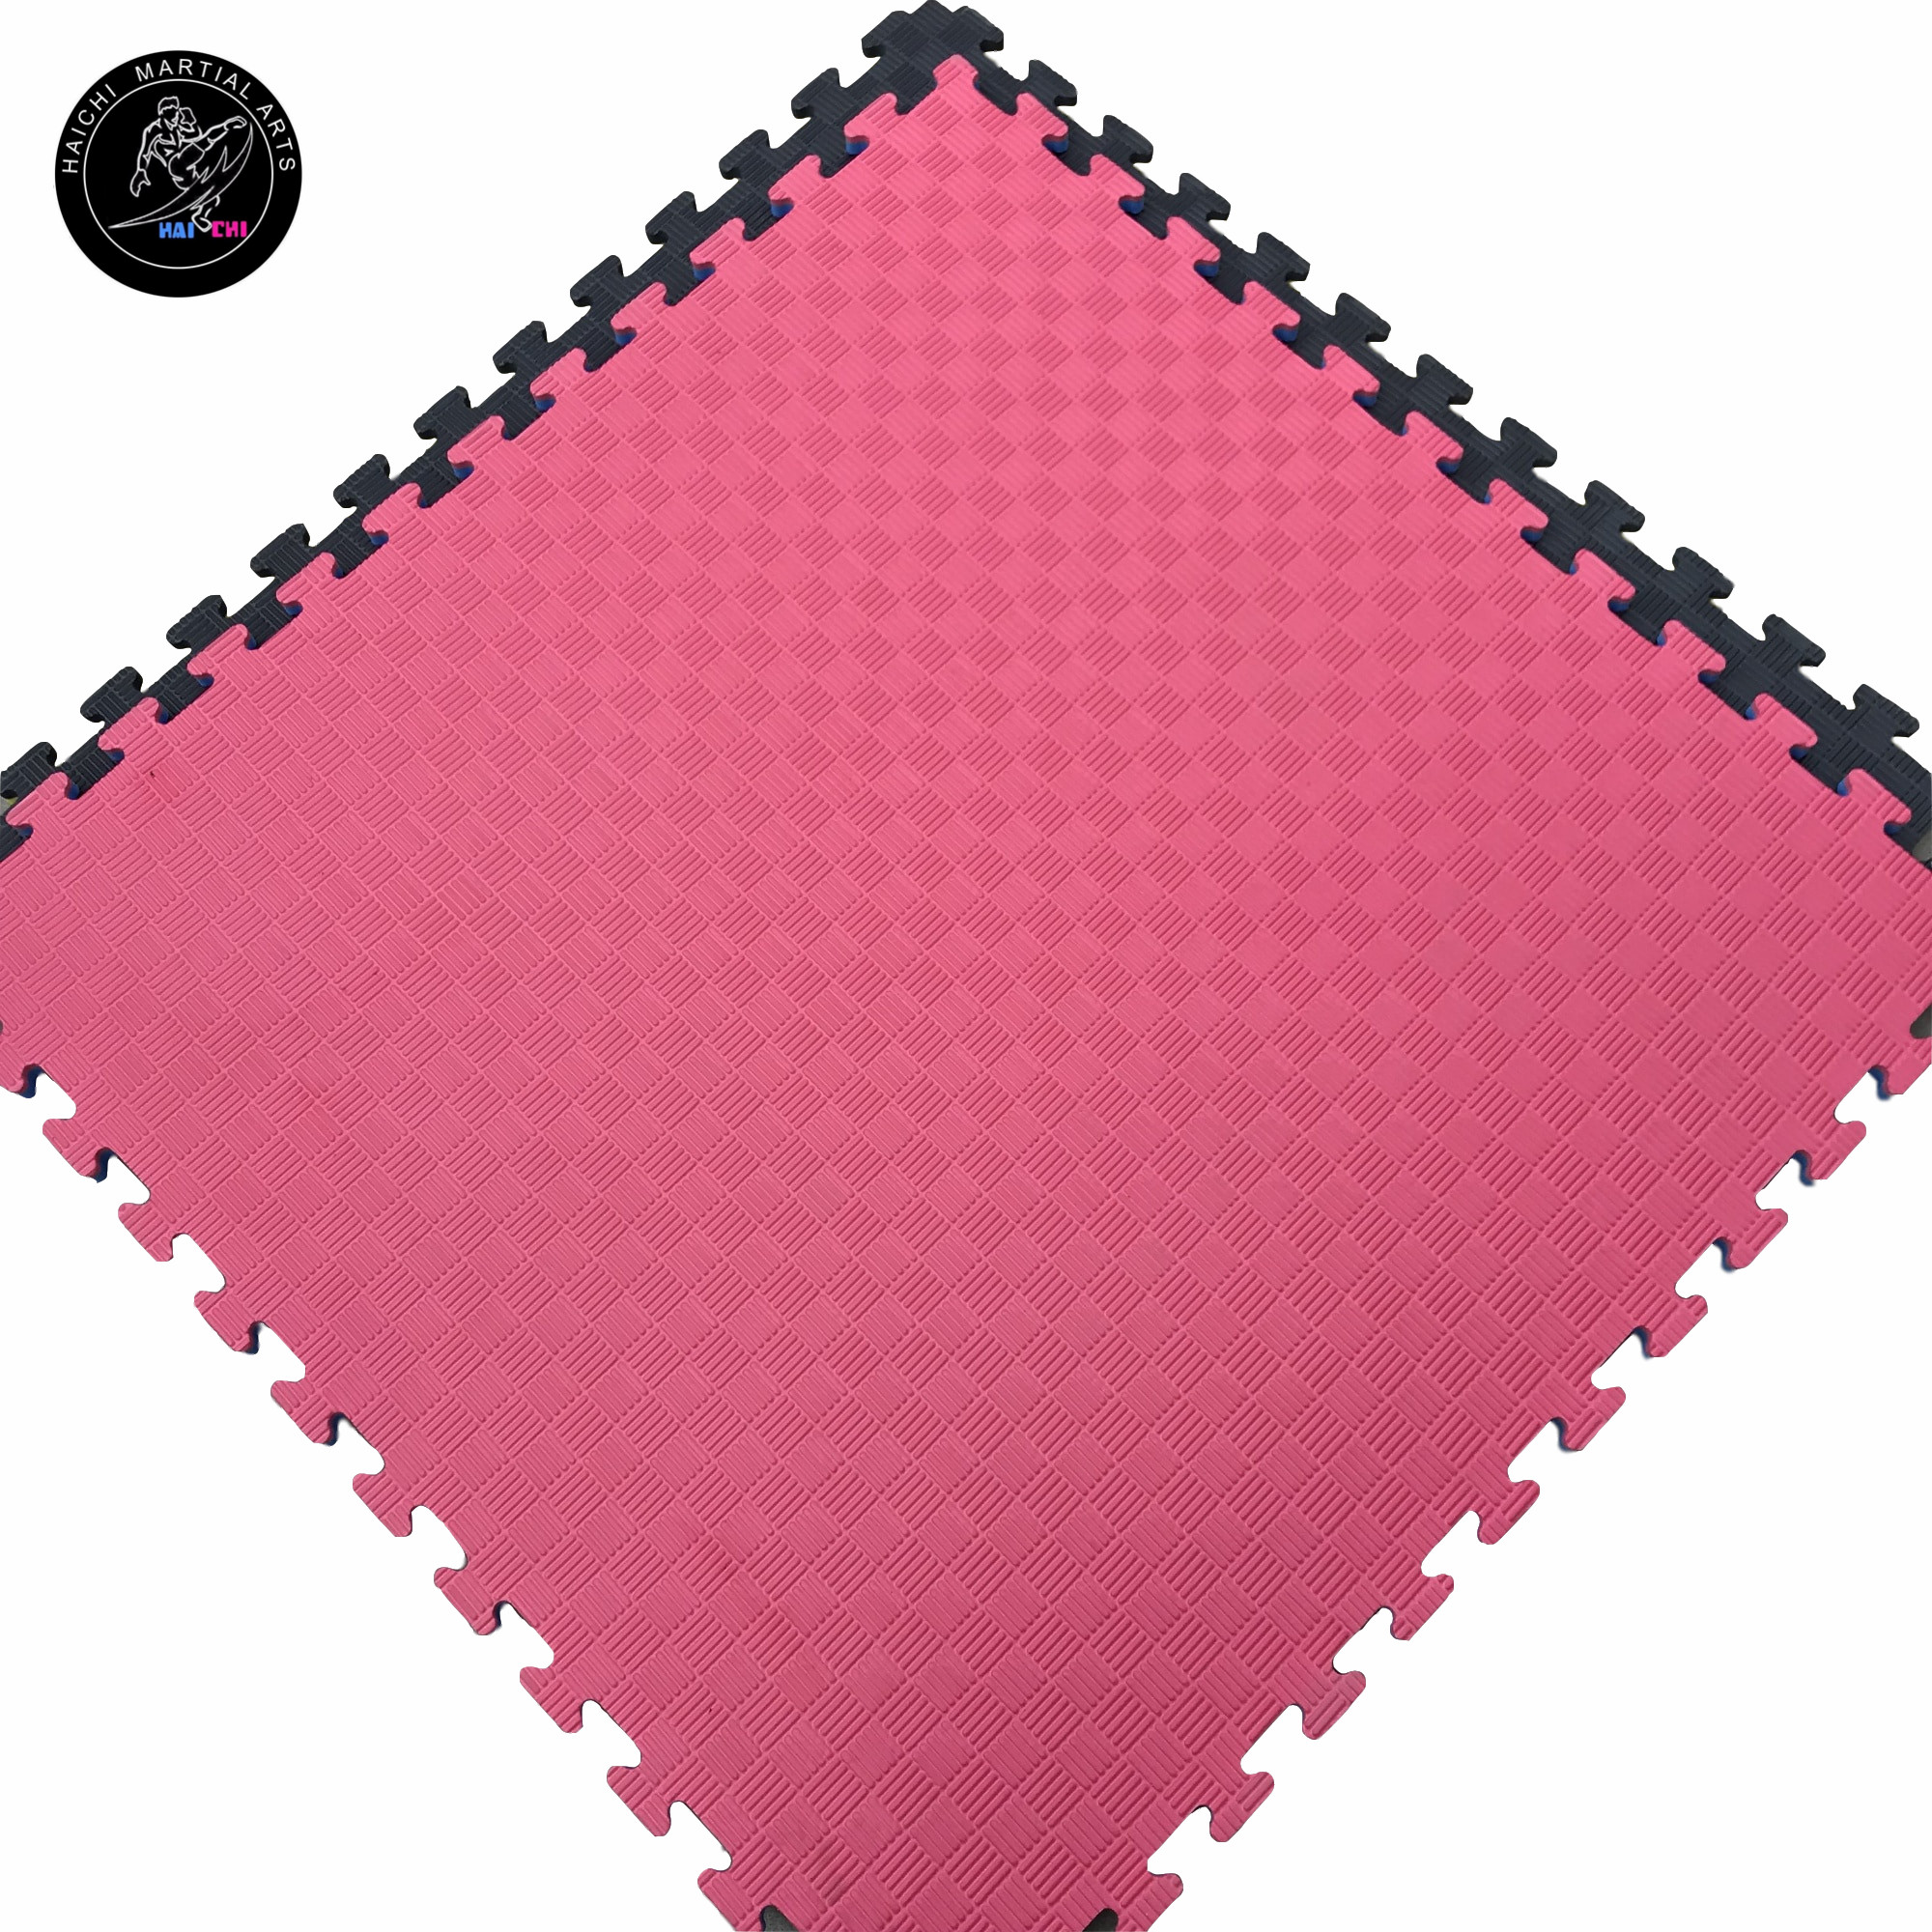 Five Strips Pattern Taekwondo Mats